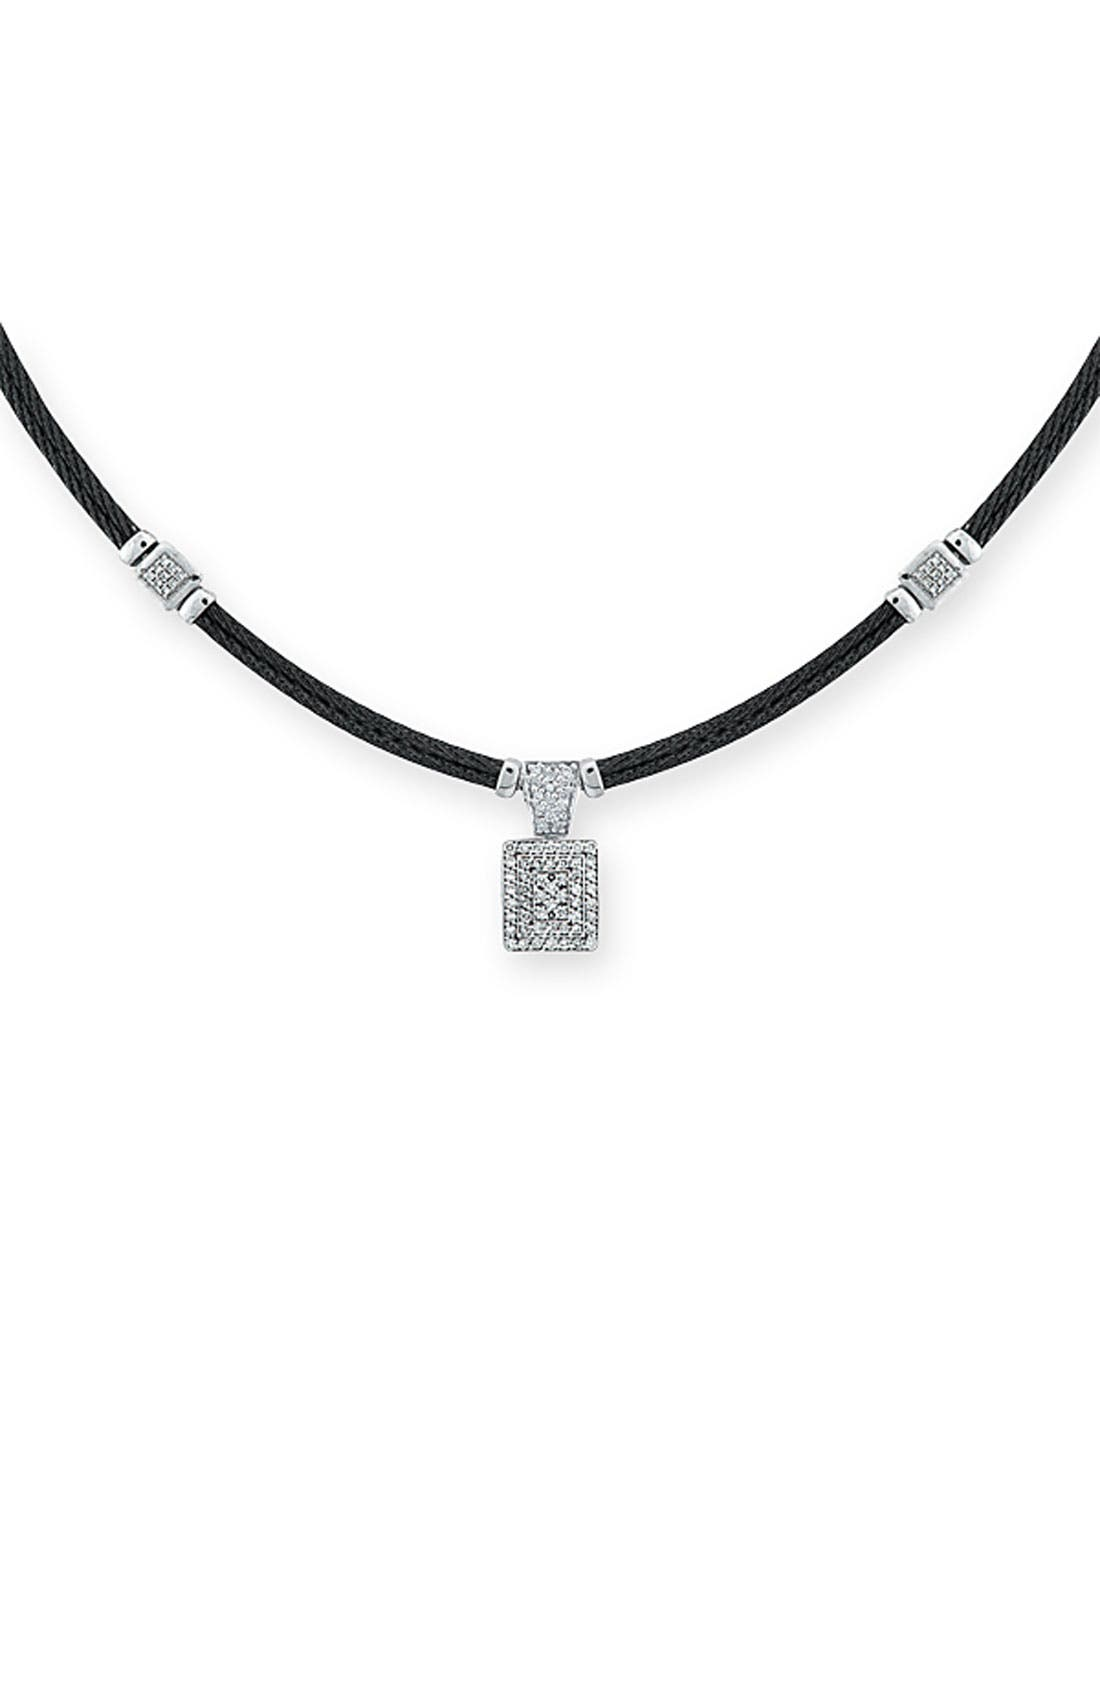 Alternate Image 1 Selected - ALOR® Two Row Diamond Necklace